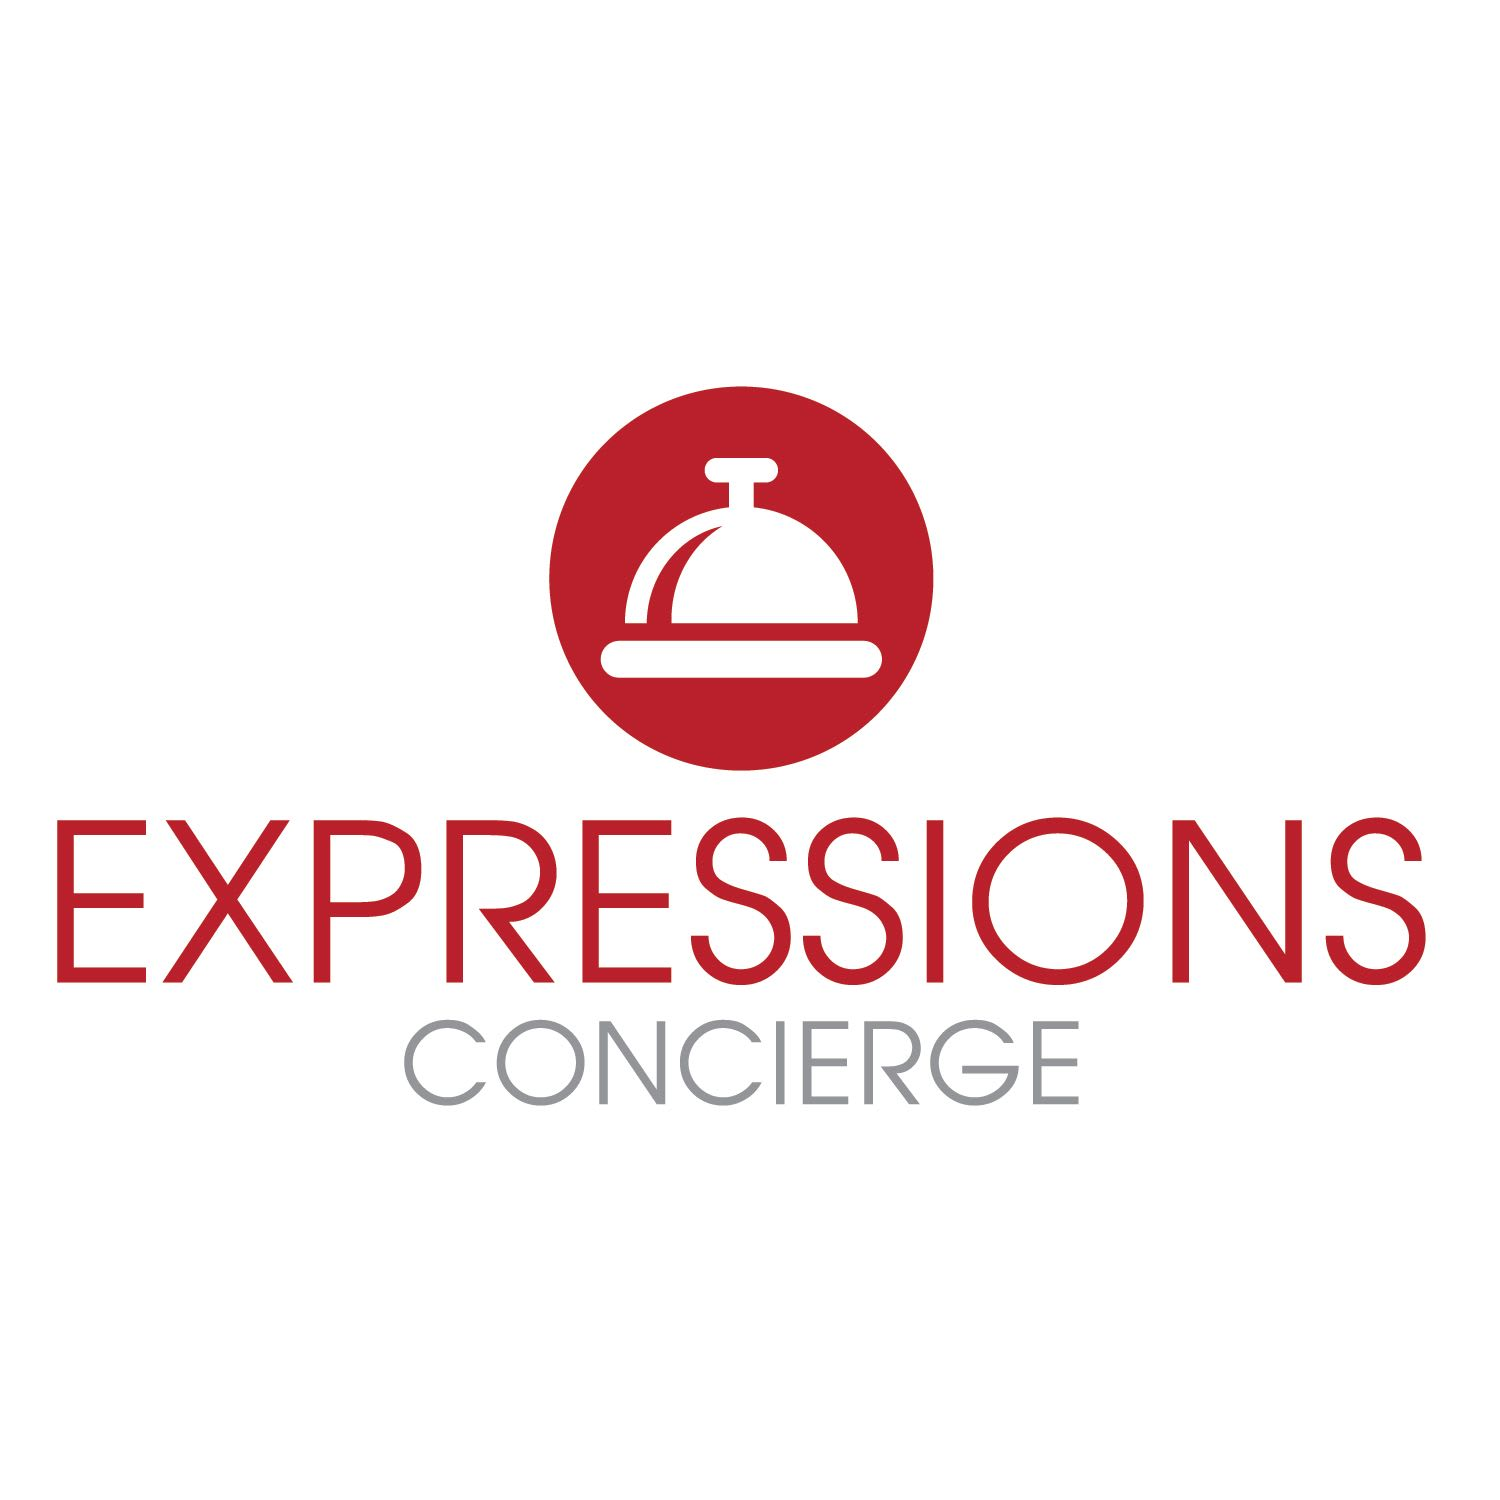 Expressions concierge service for senior living residents at Blue Ridge Assisted Living